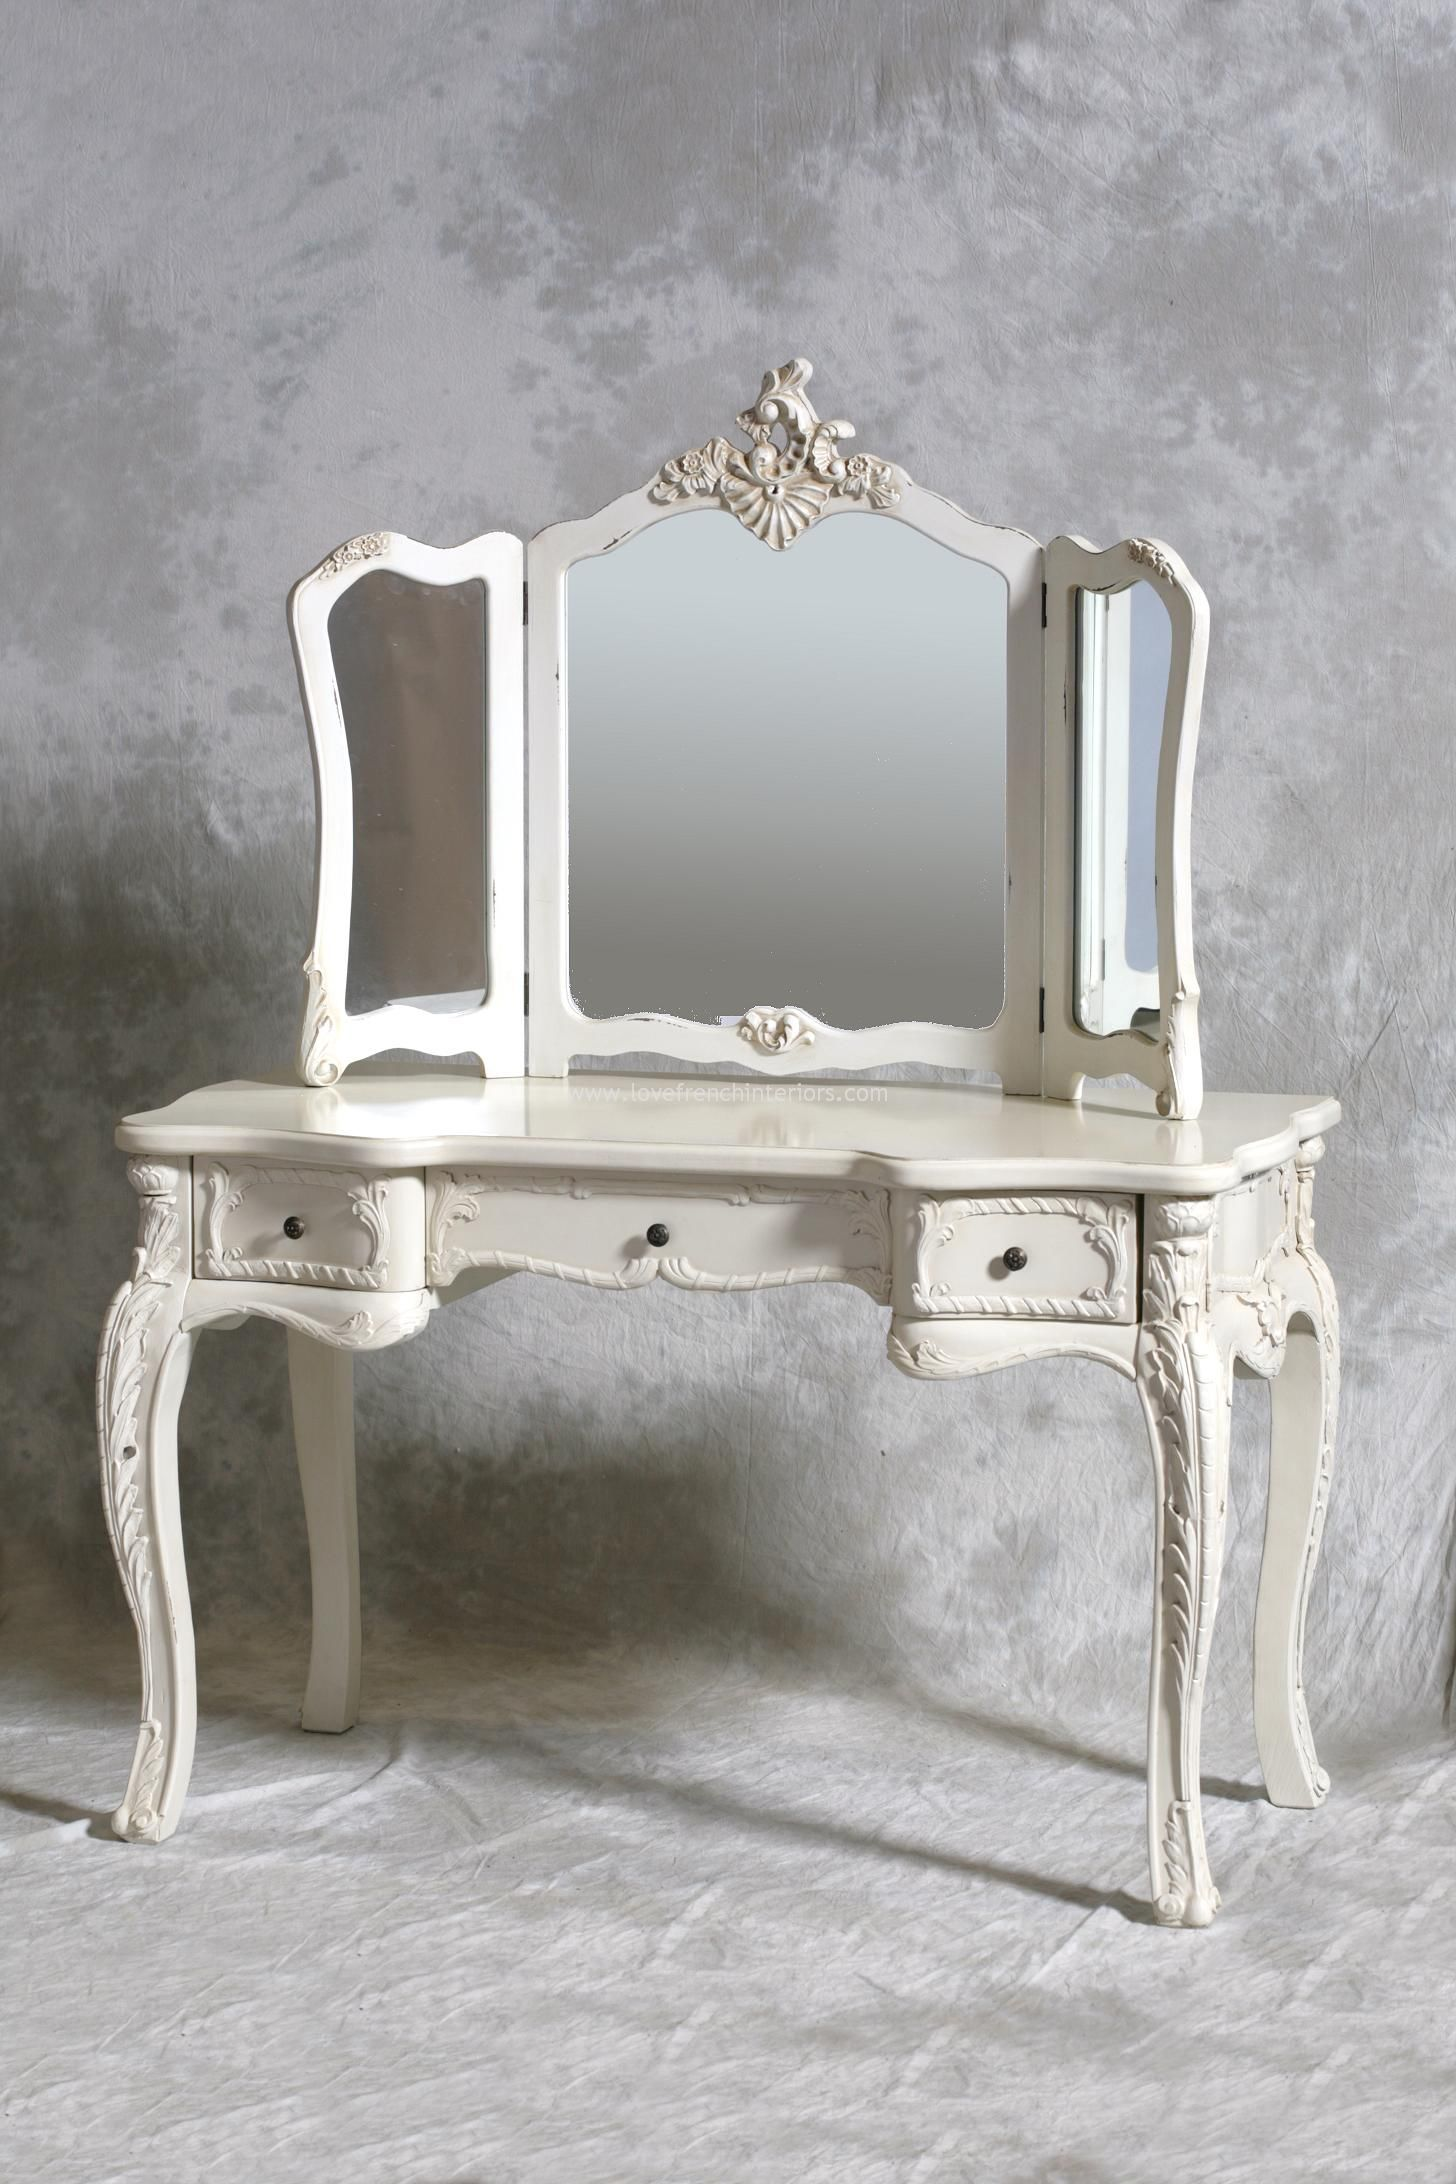 Furniture french style antique and vintage makeup vanity table furniture french style antique and vintage makeup vanity table with 3 folding mirror set and geotapseo Gallery